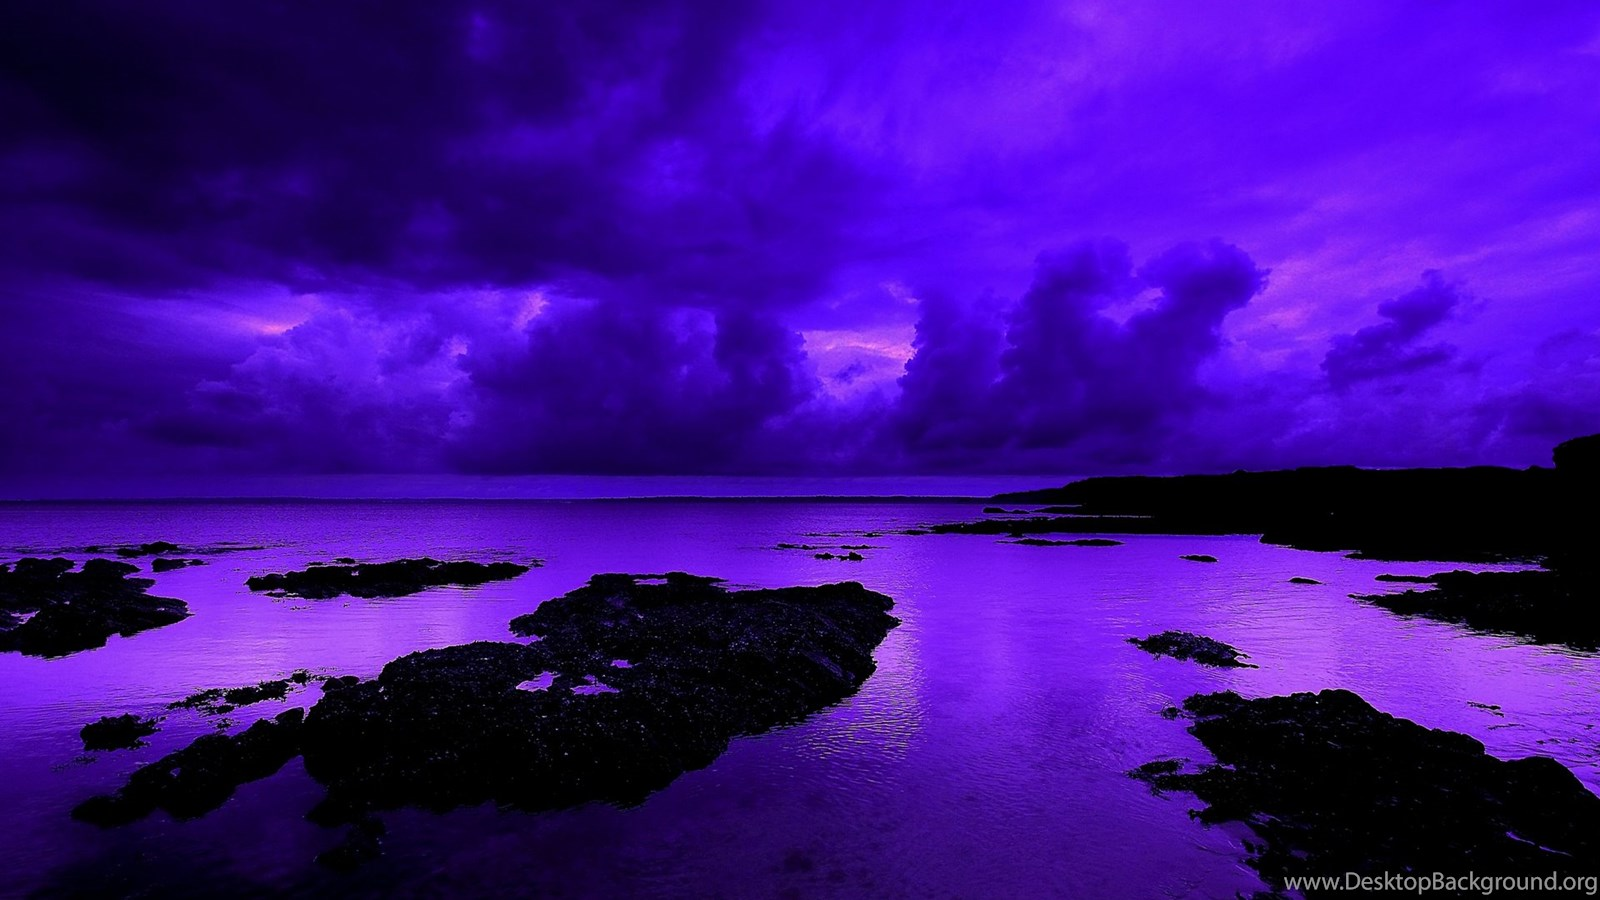 High Definition Wallpapers High: Violet Backgrounds Wallpaper, High Definition, High